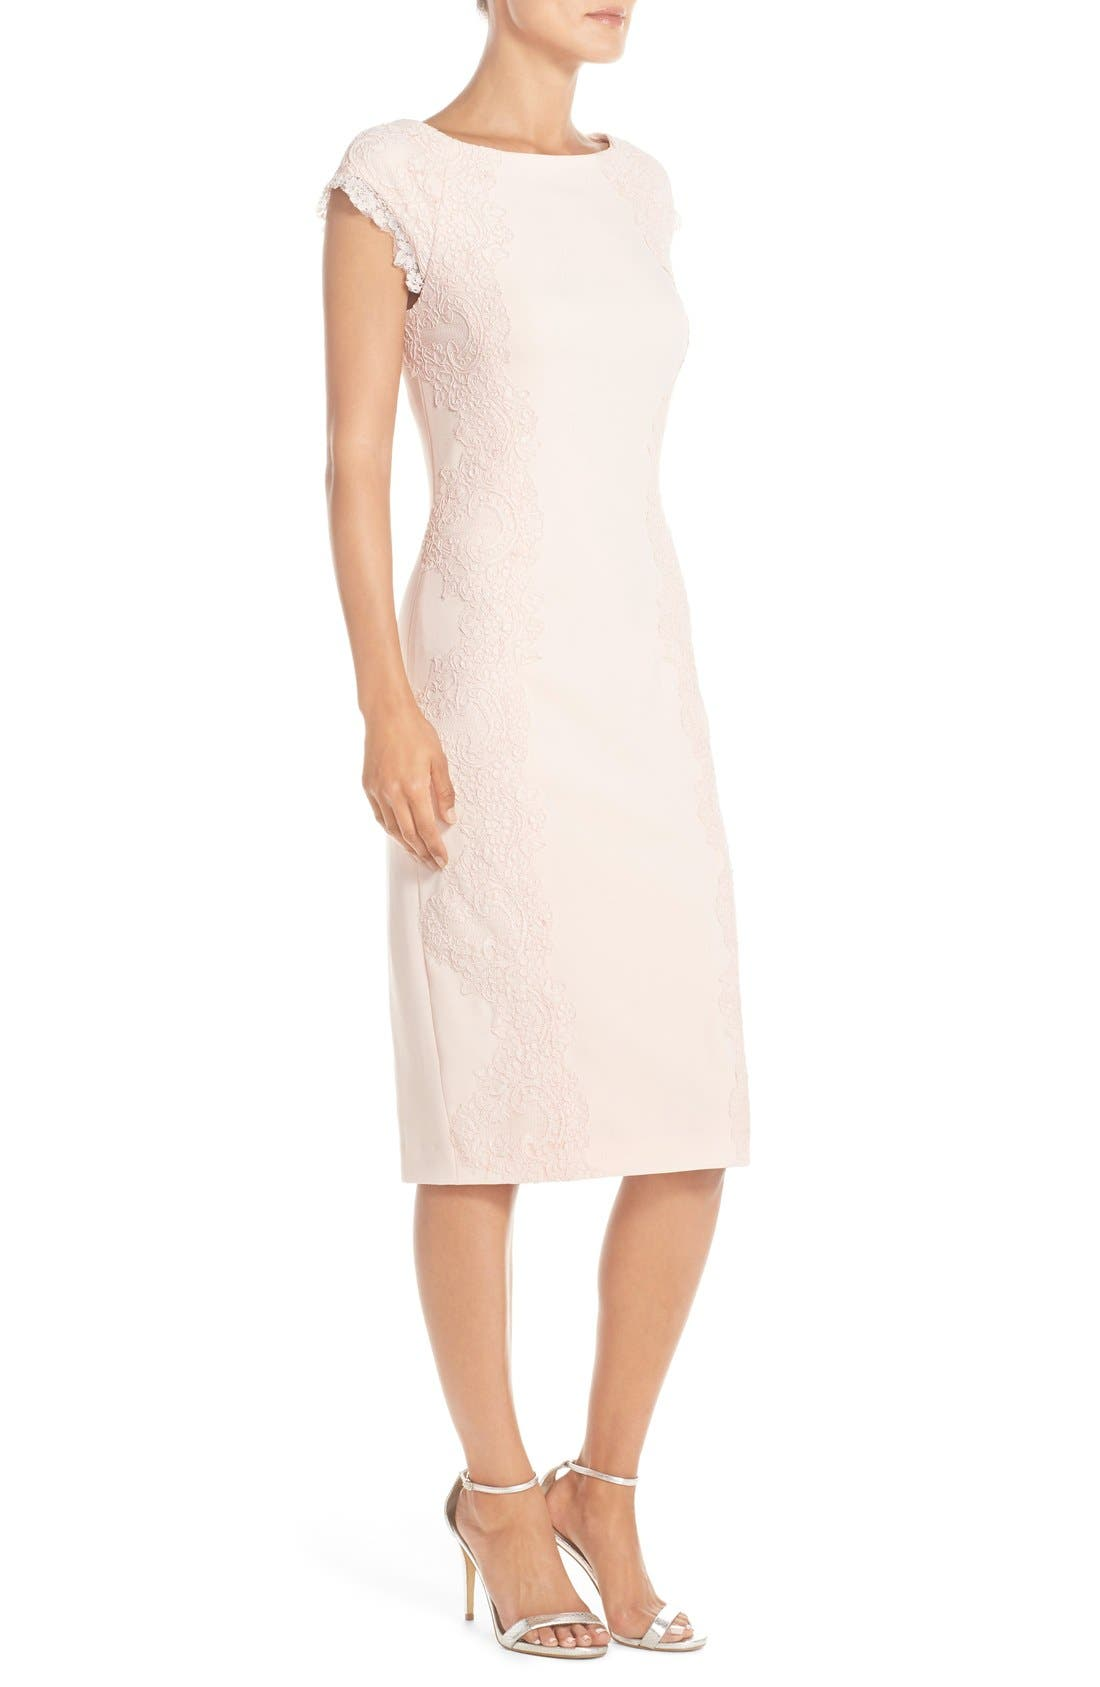 Lace Detail Crepe Sheath Dress,                             Alternate thumbnail 10, color,                             BLUSH